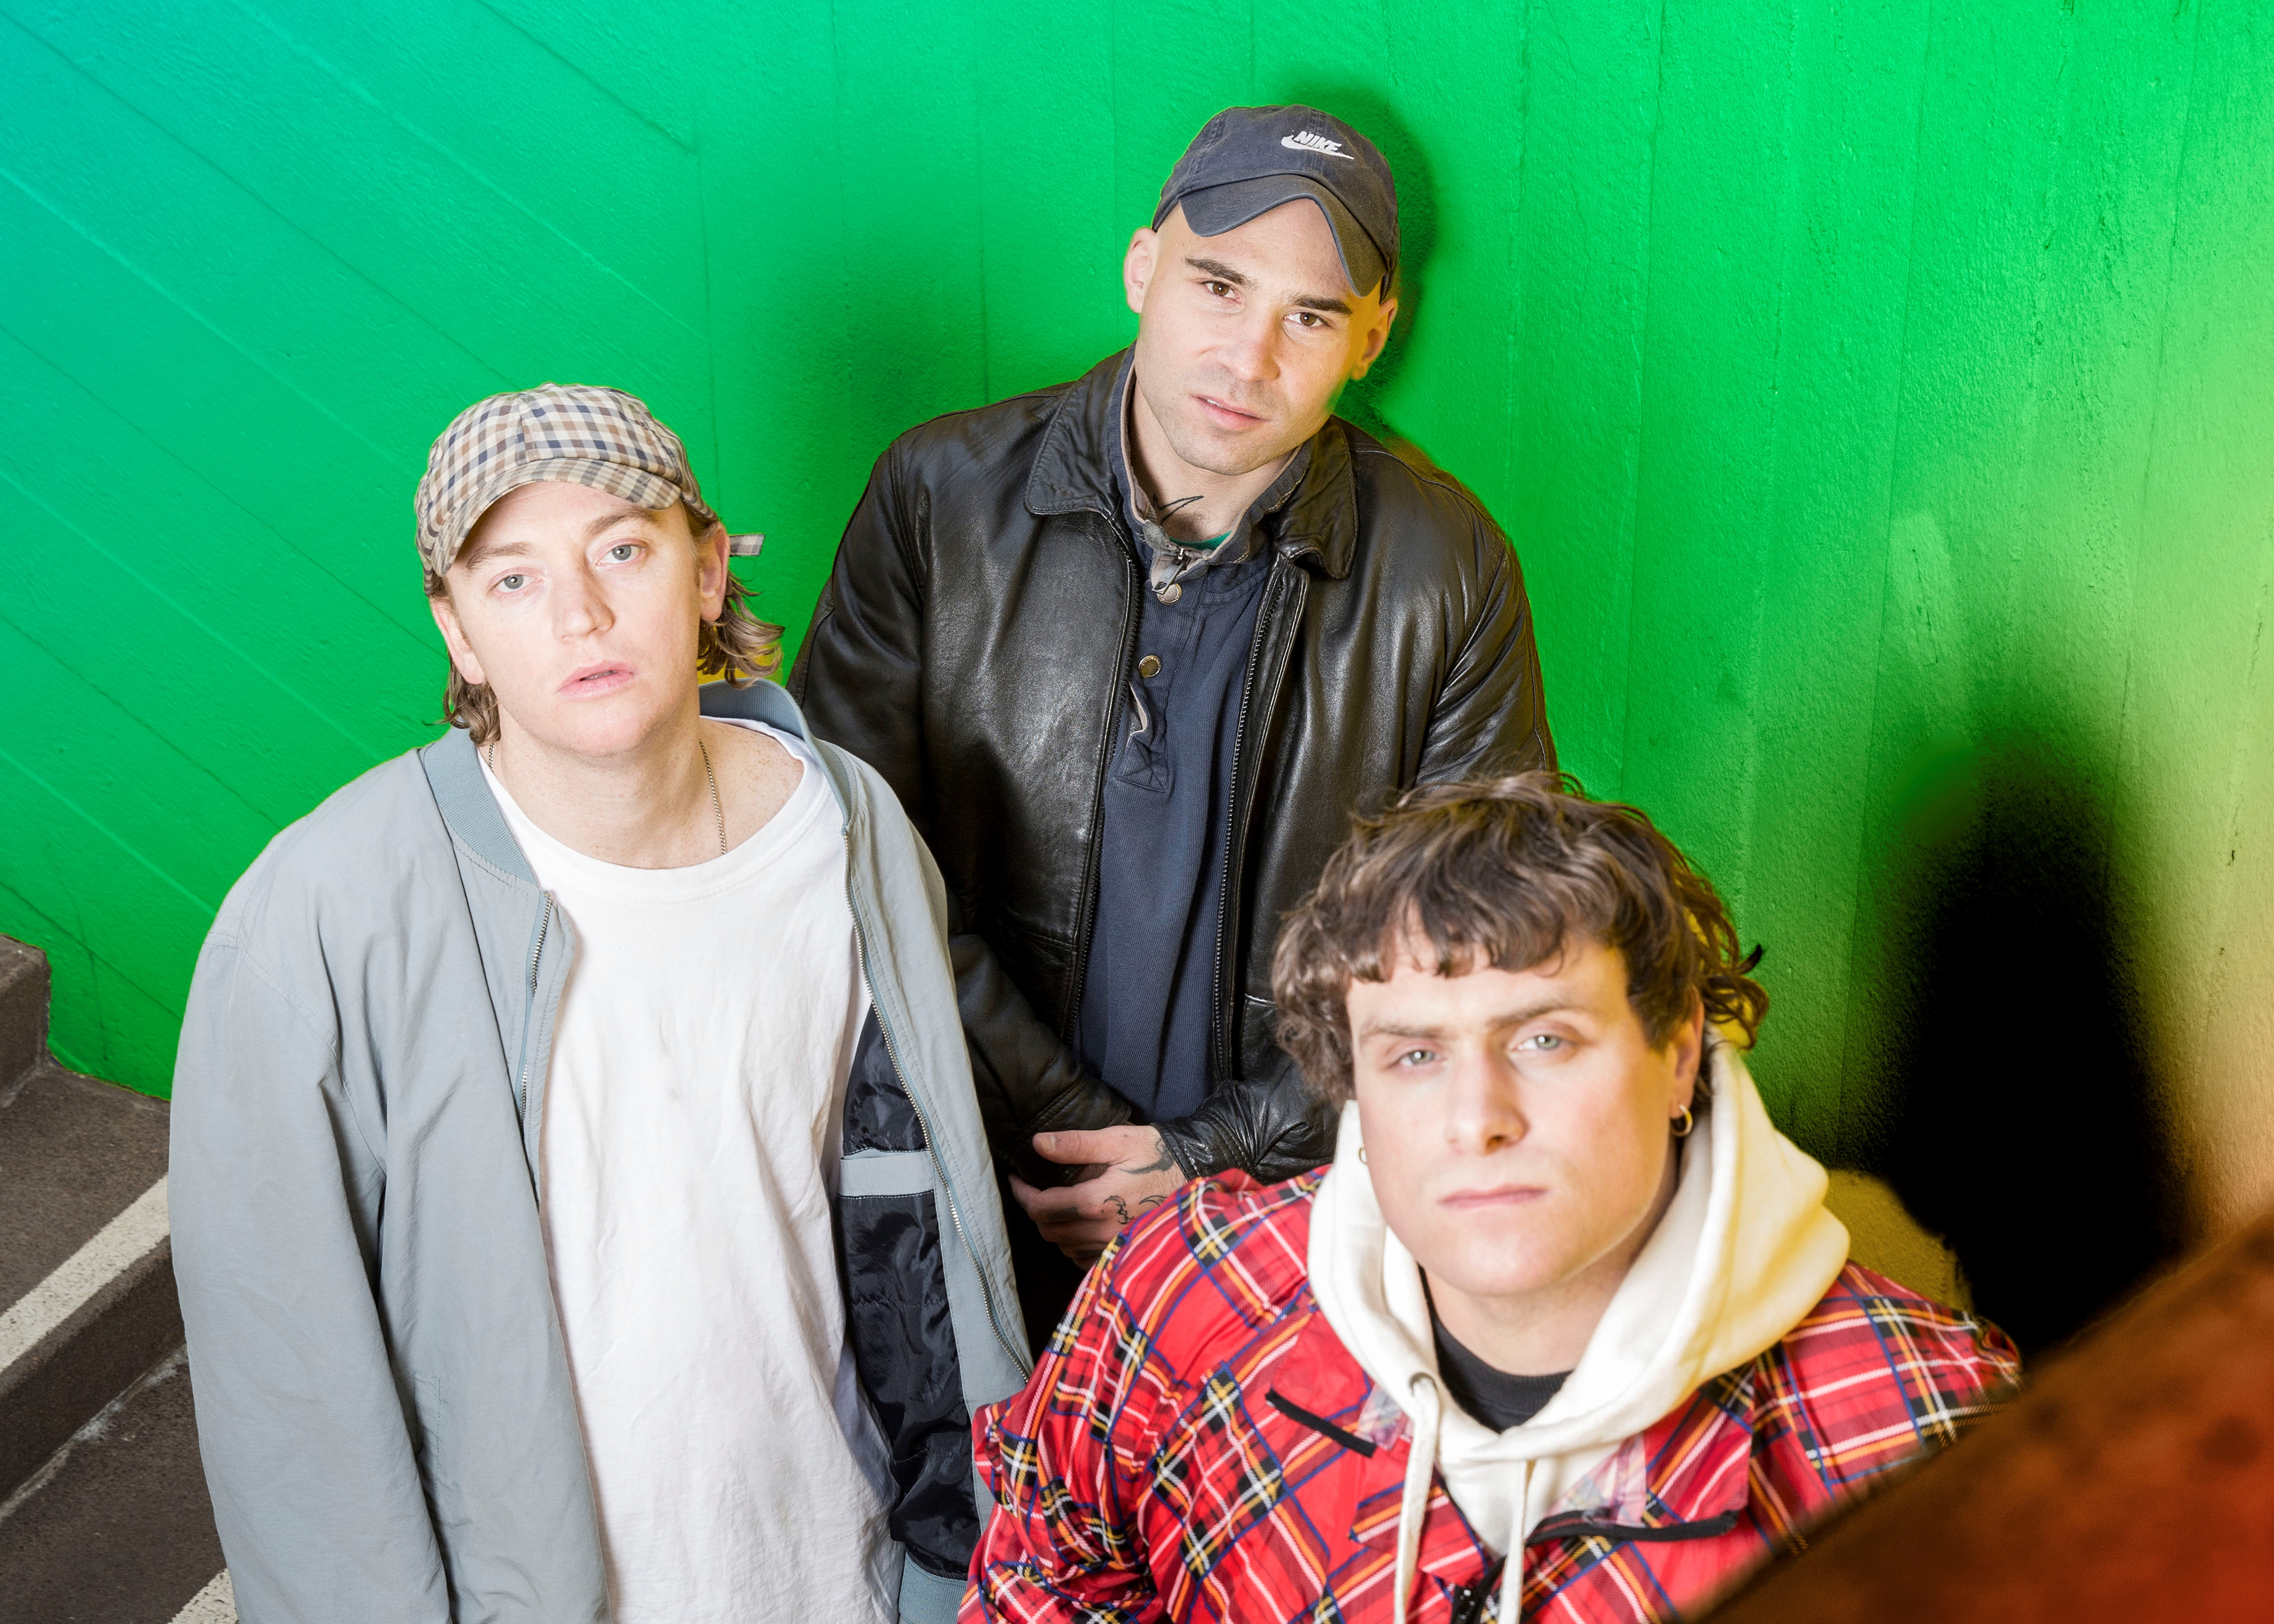 Still Haven't Heard DMA'S New Album? Don't Worry, Triple J Have Got You Covered